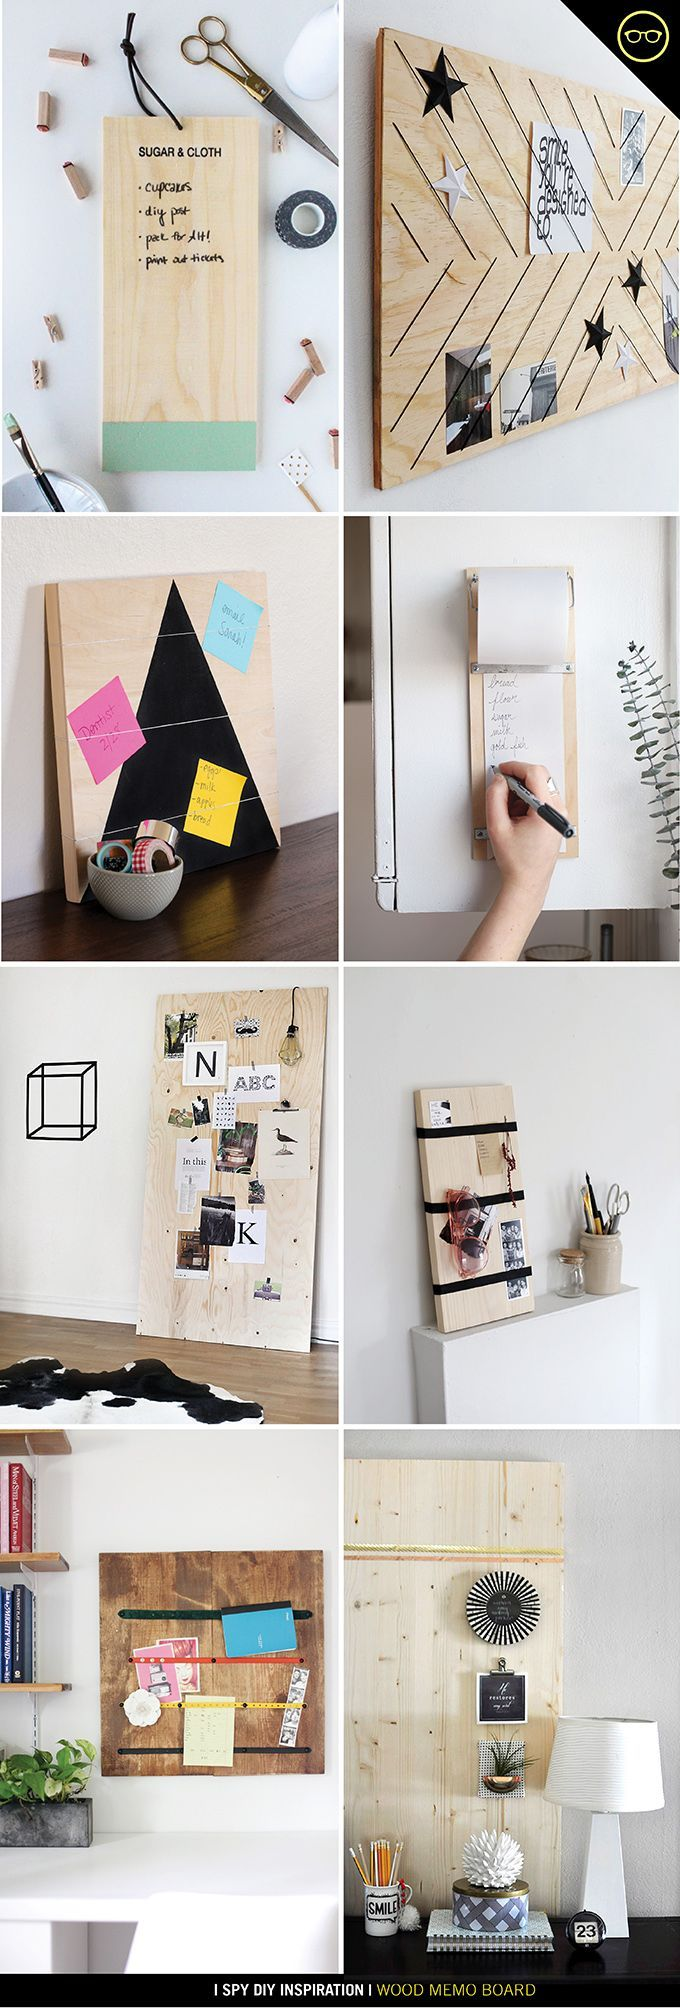 DIY INSPIRATION | WOOD MEMO BOARD